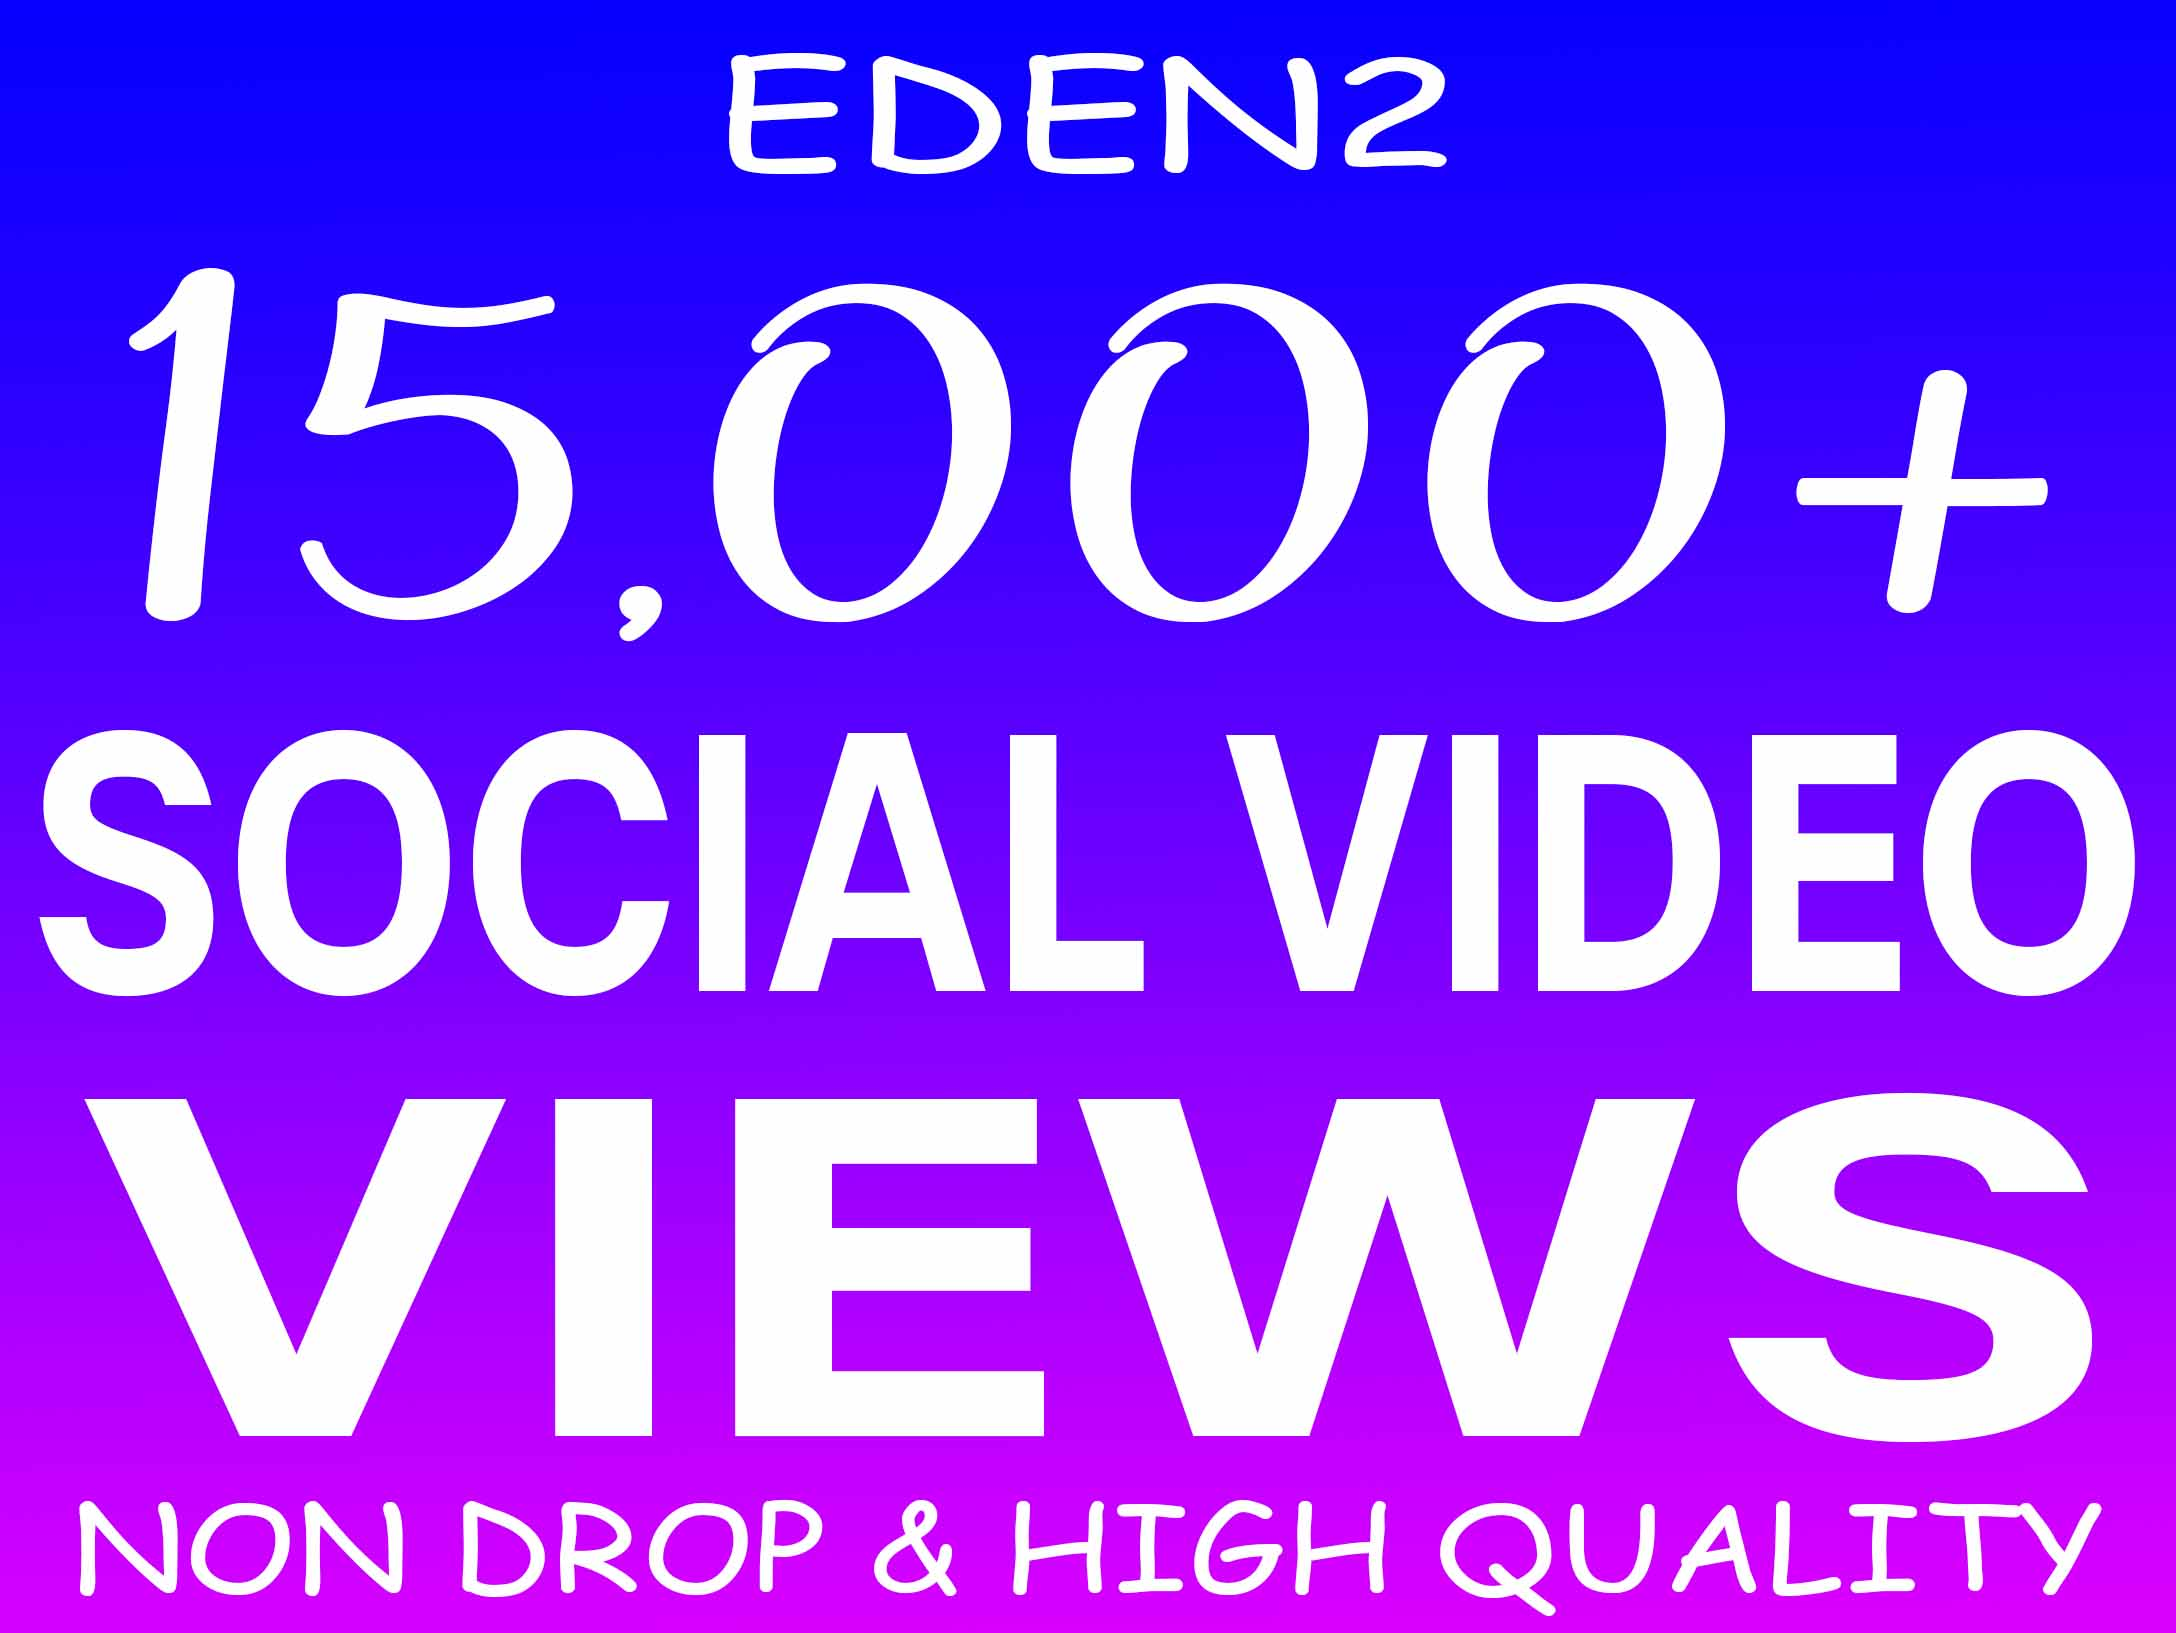 ADD 15K SOCIAL VIDEO VIEWS NON DROP AND HIGH QUALITY PROMOTION WITH INSTANT START